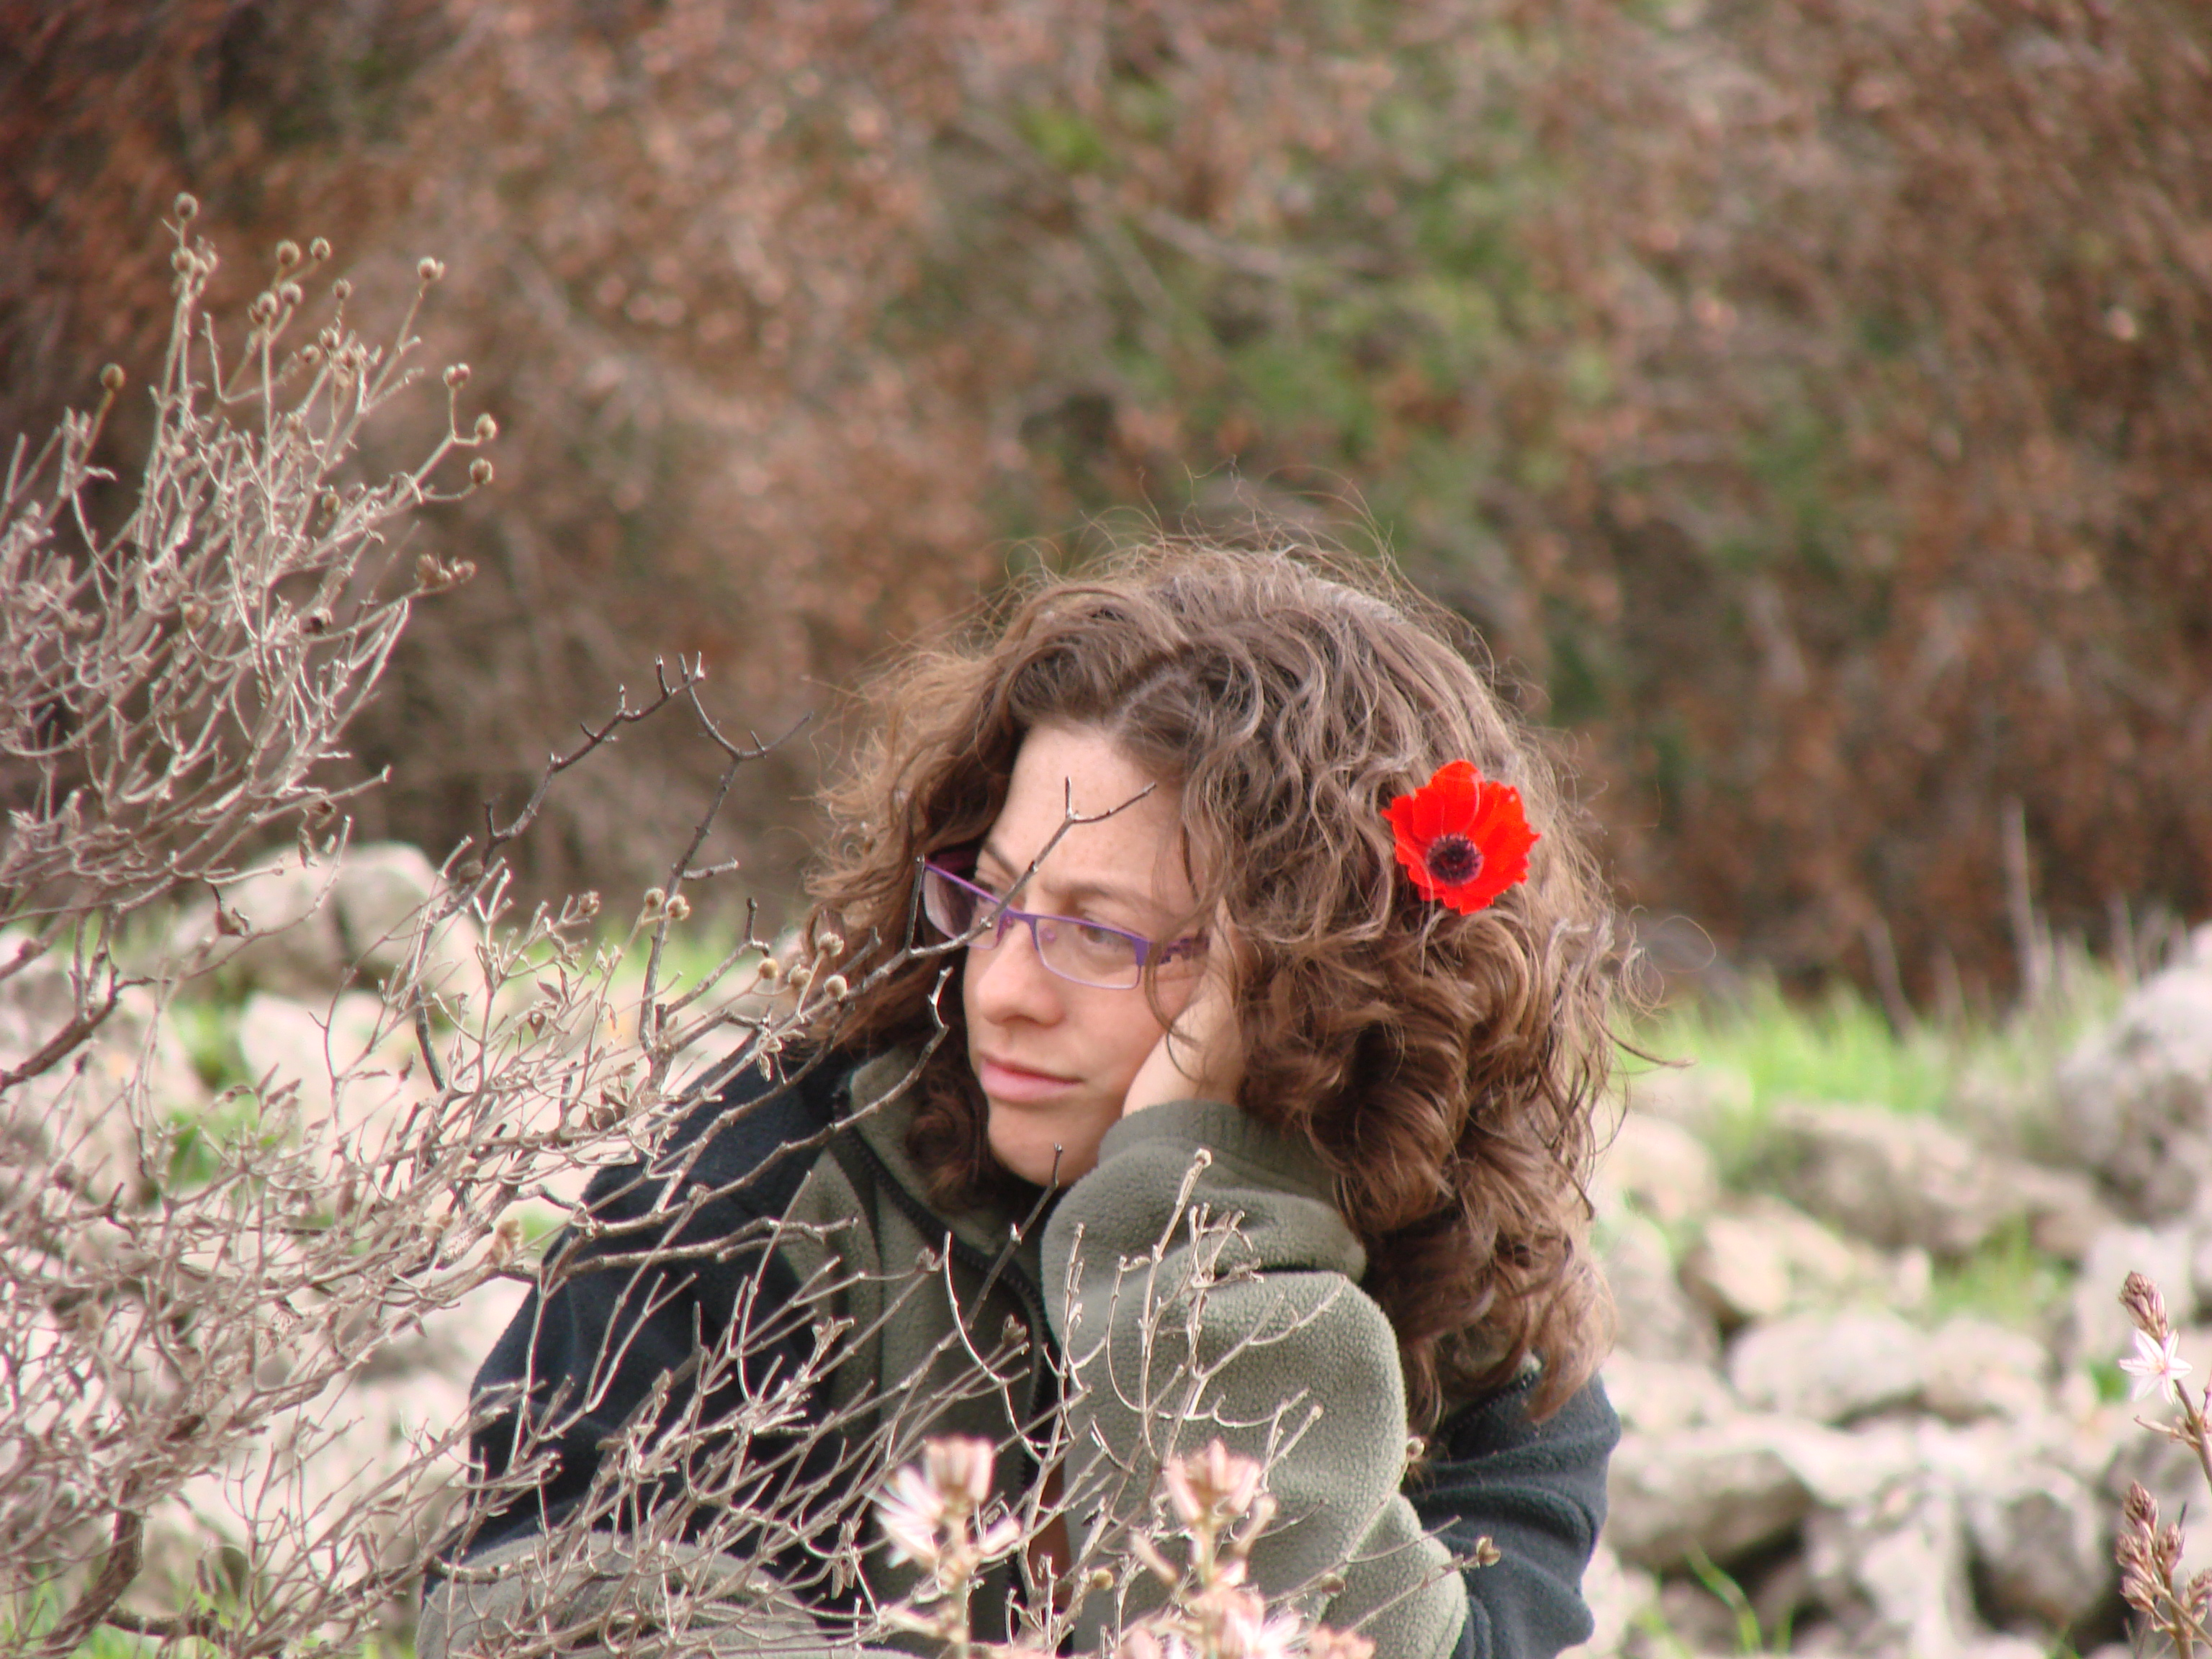 file:pikiwiki israel 38195 pretty girl in a hike at the begging of